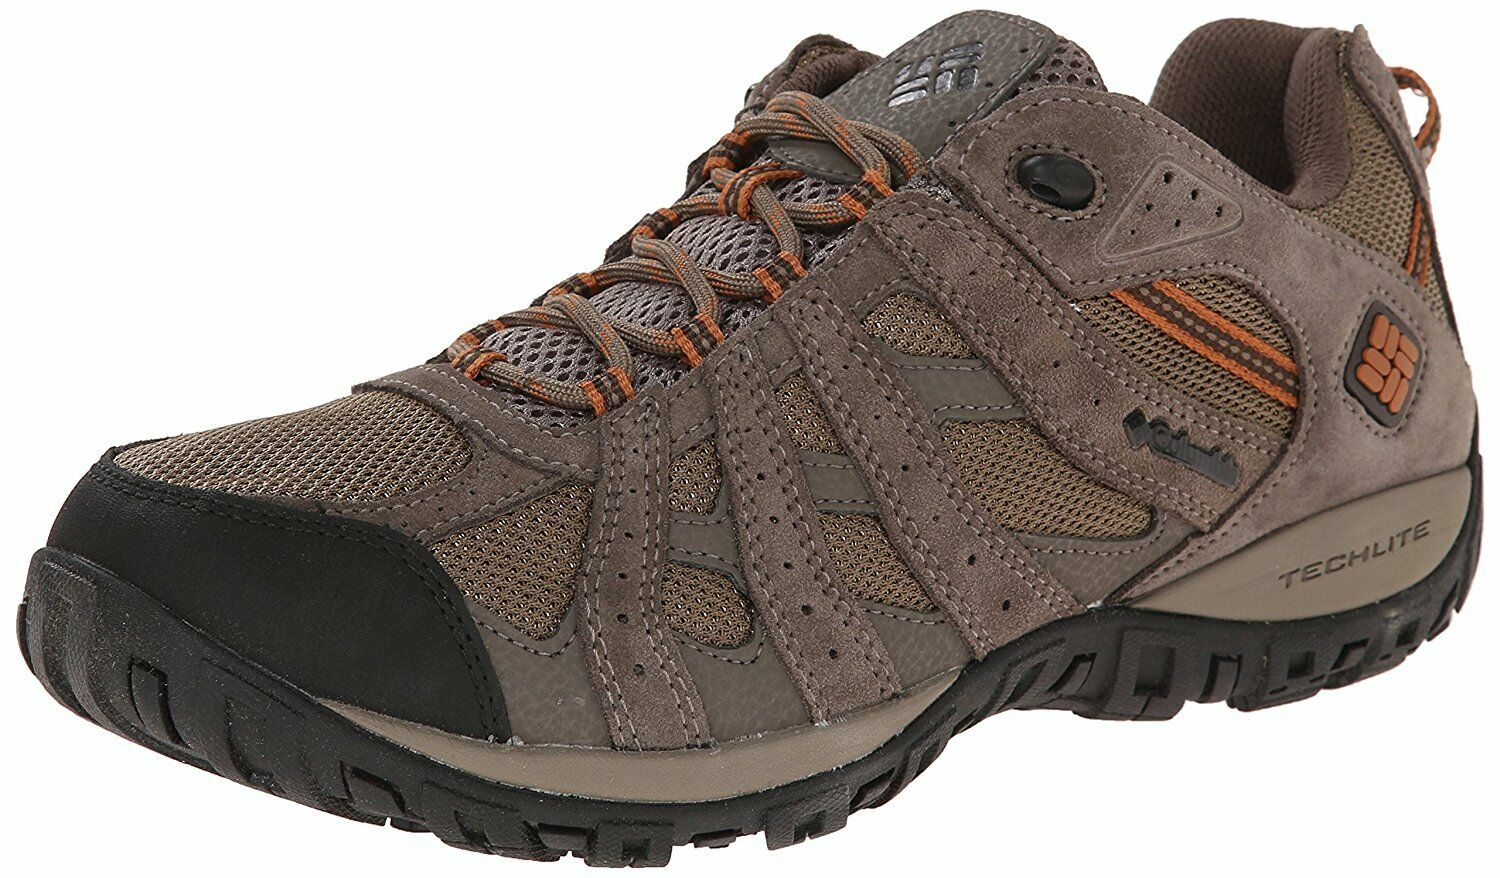 Columbia 1553612 Mens Redmond Waterproof Wide Hiking Shoe- Choose SZ/Color.